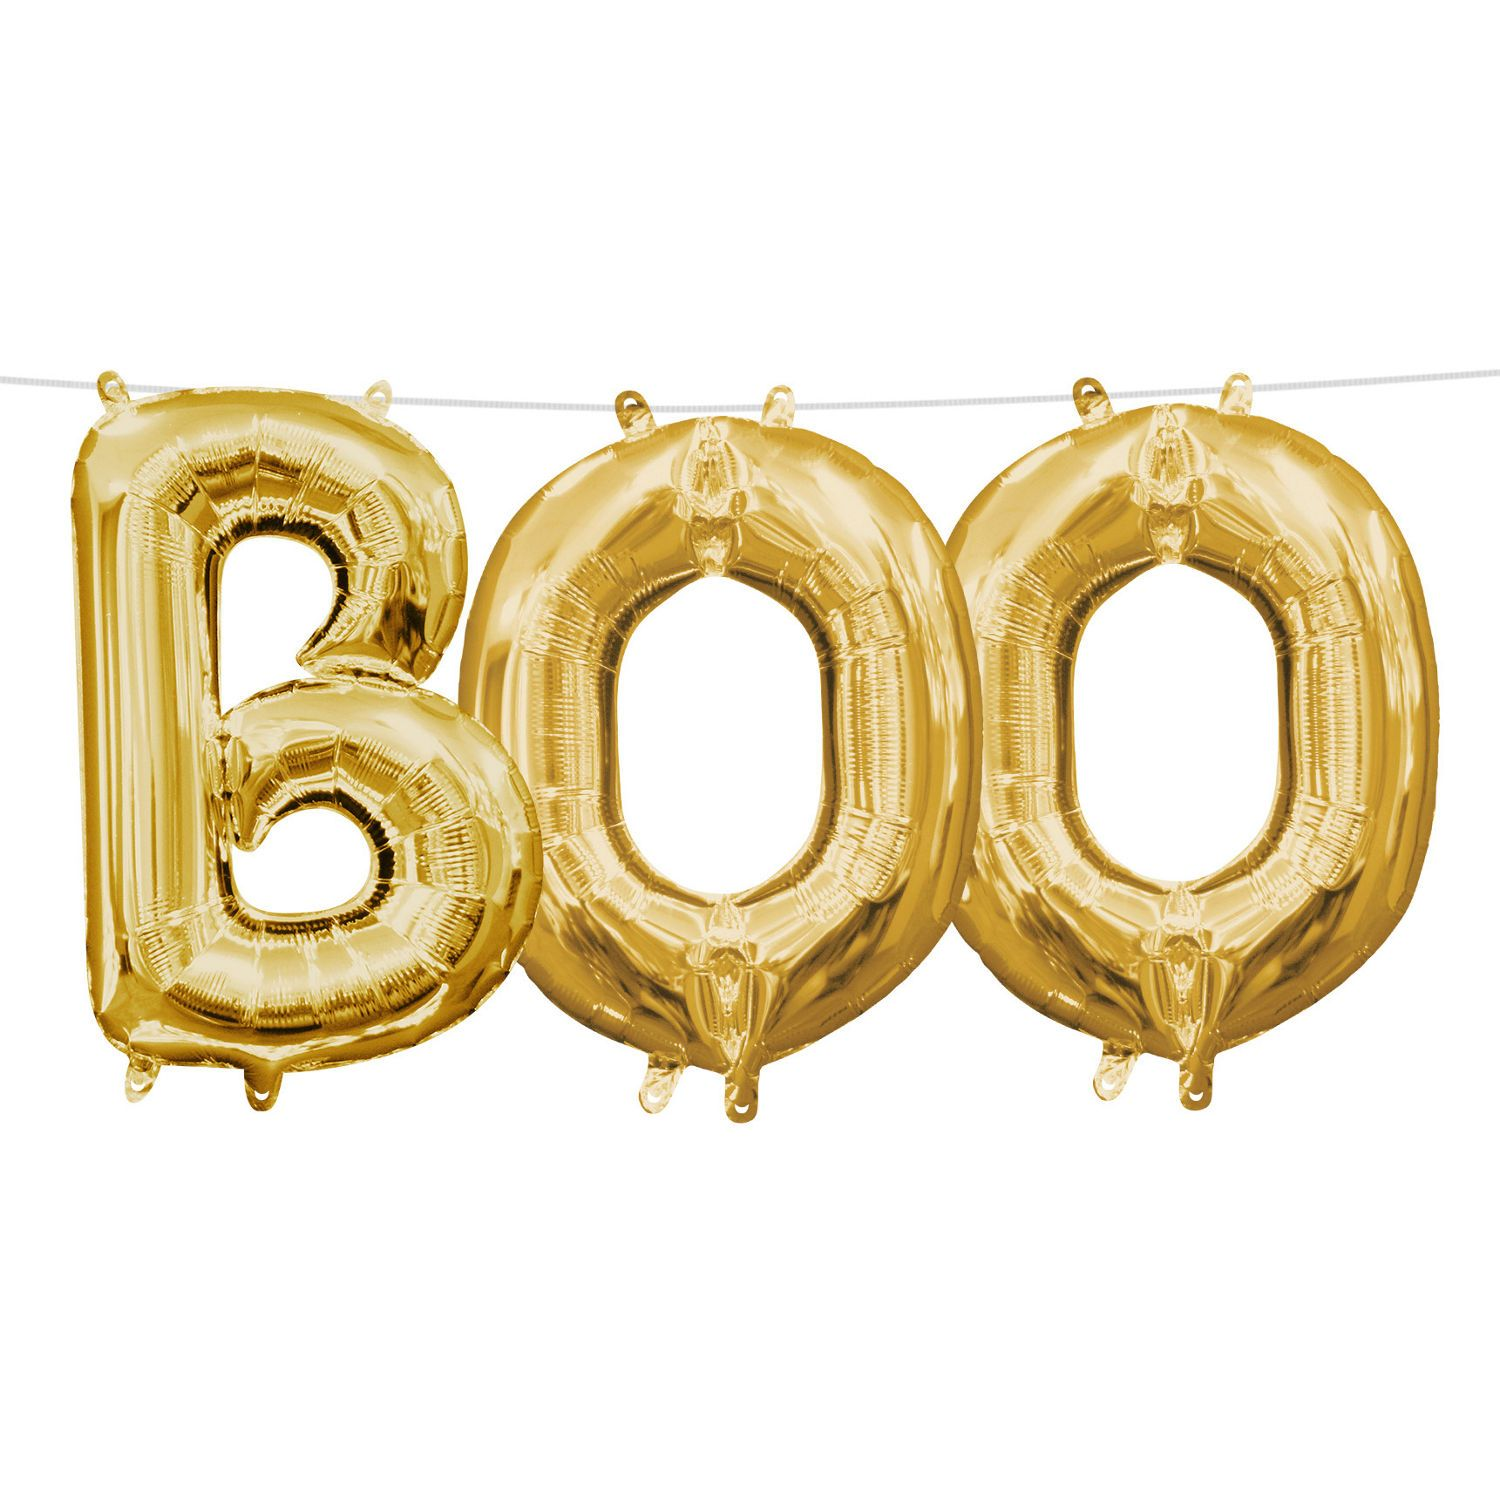 13in AirFilled Gold Boo Letter Balloon Kit Letter